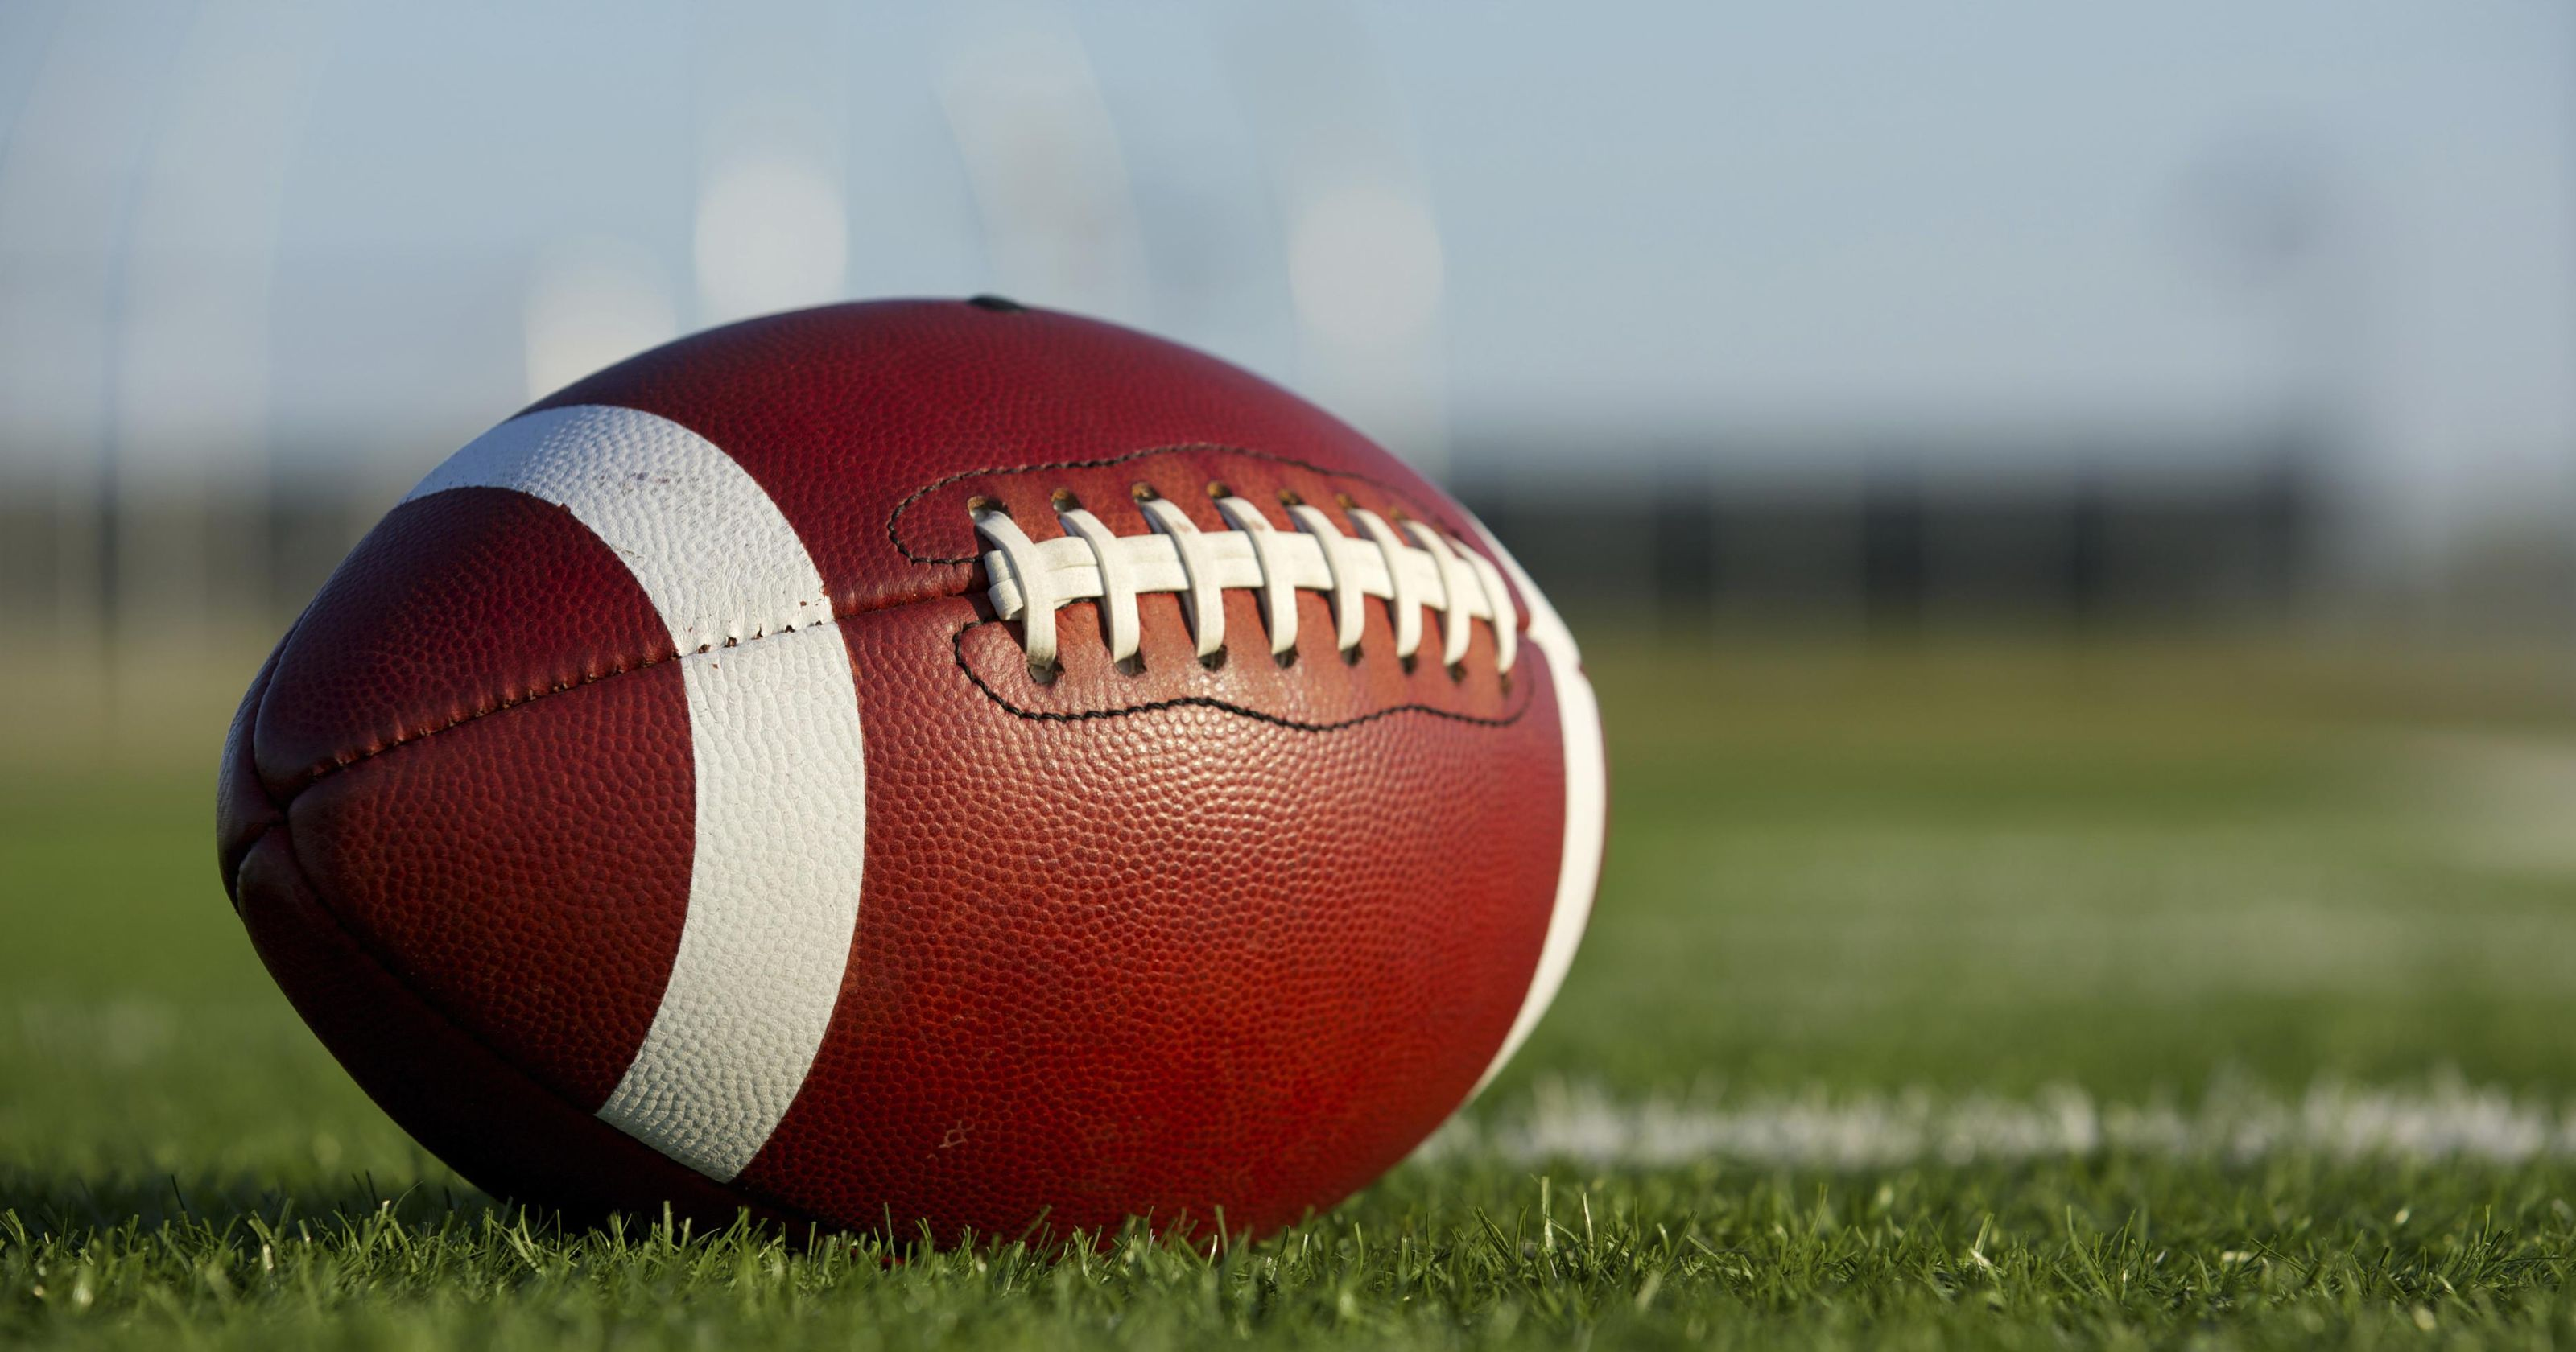 Muffed Punts, Dead balls, and the attempt to eliminate confusion